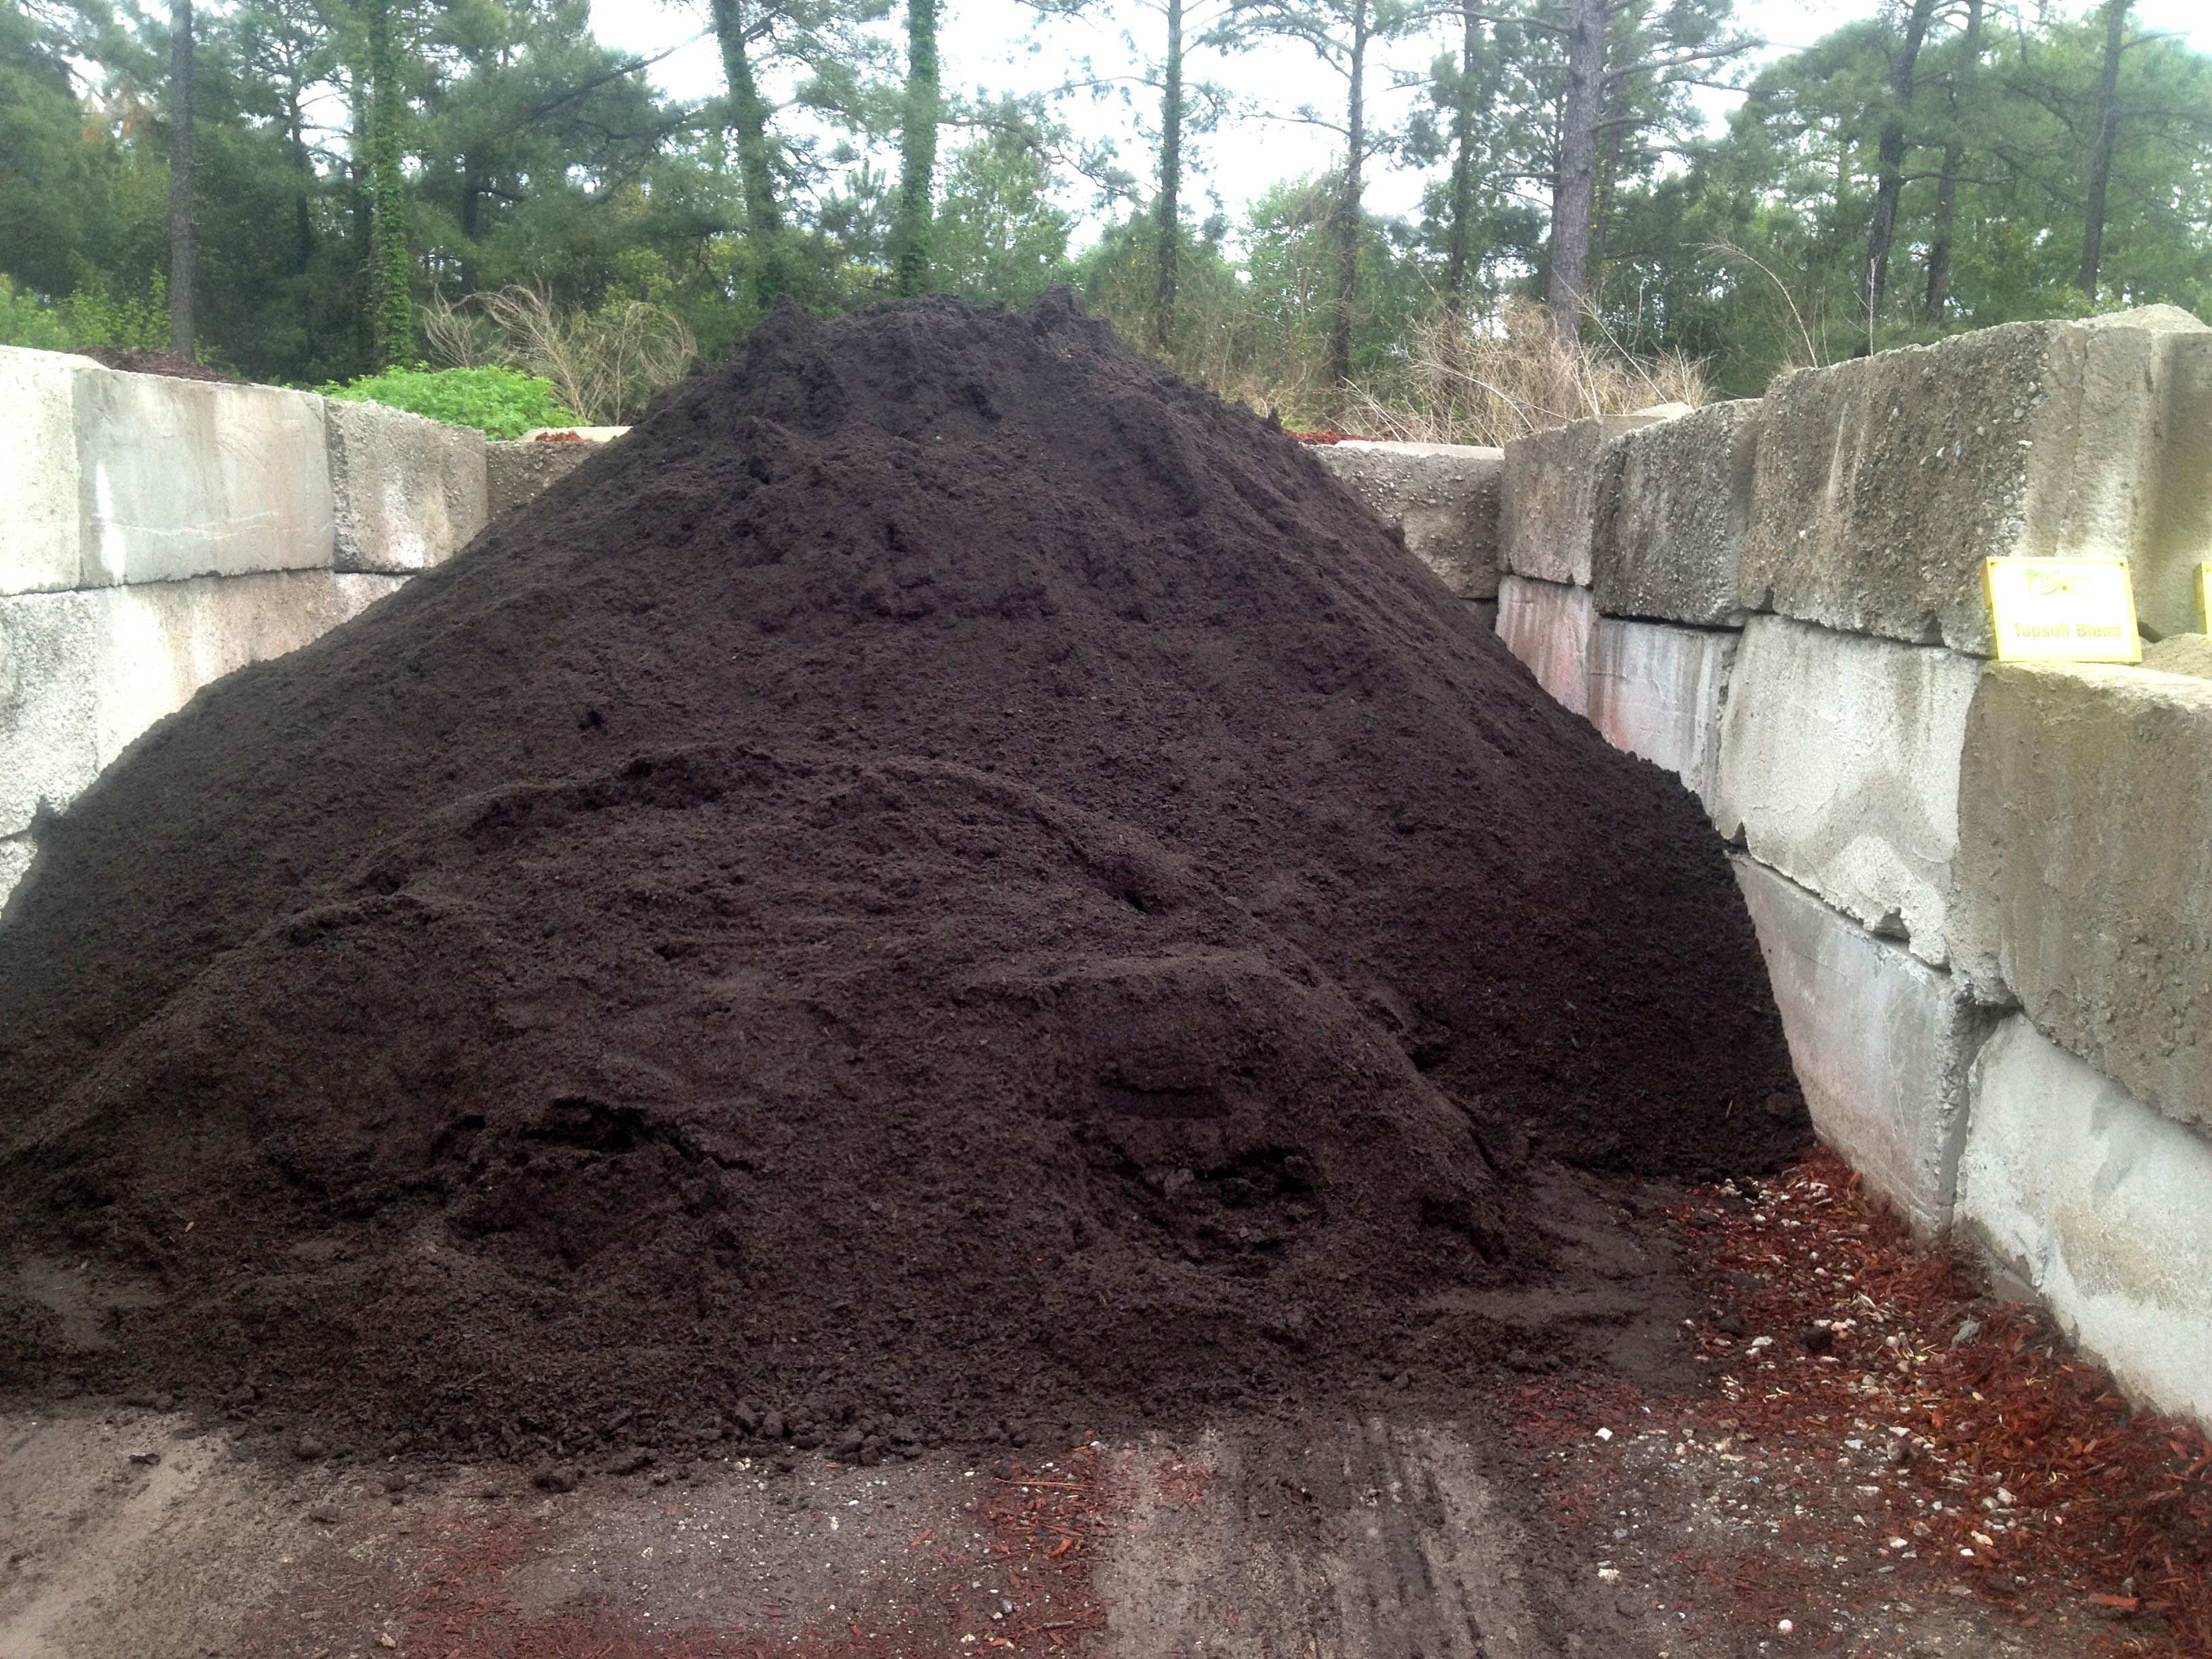 Top soil images galleries with a bite for Dirt and soil